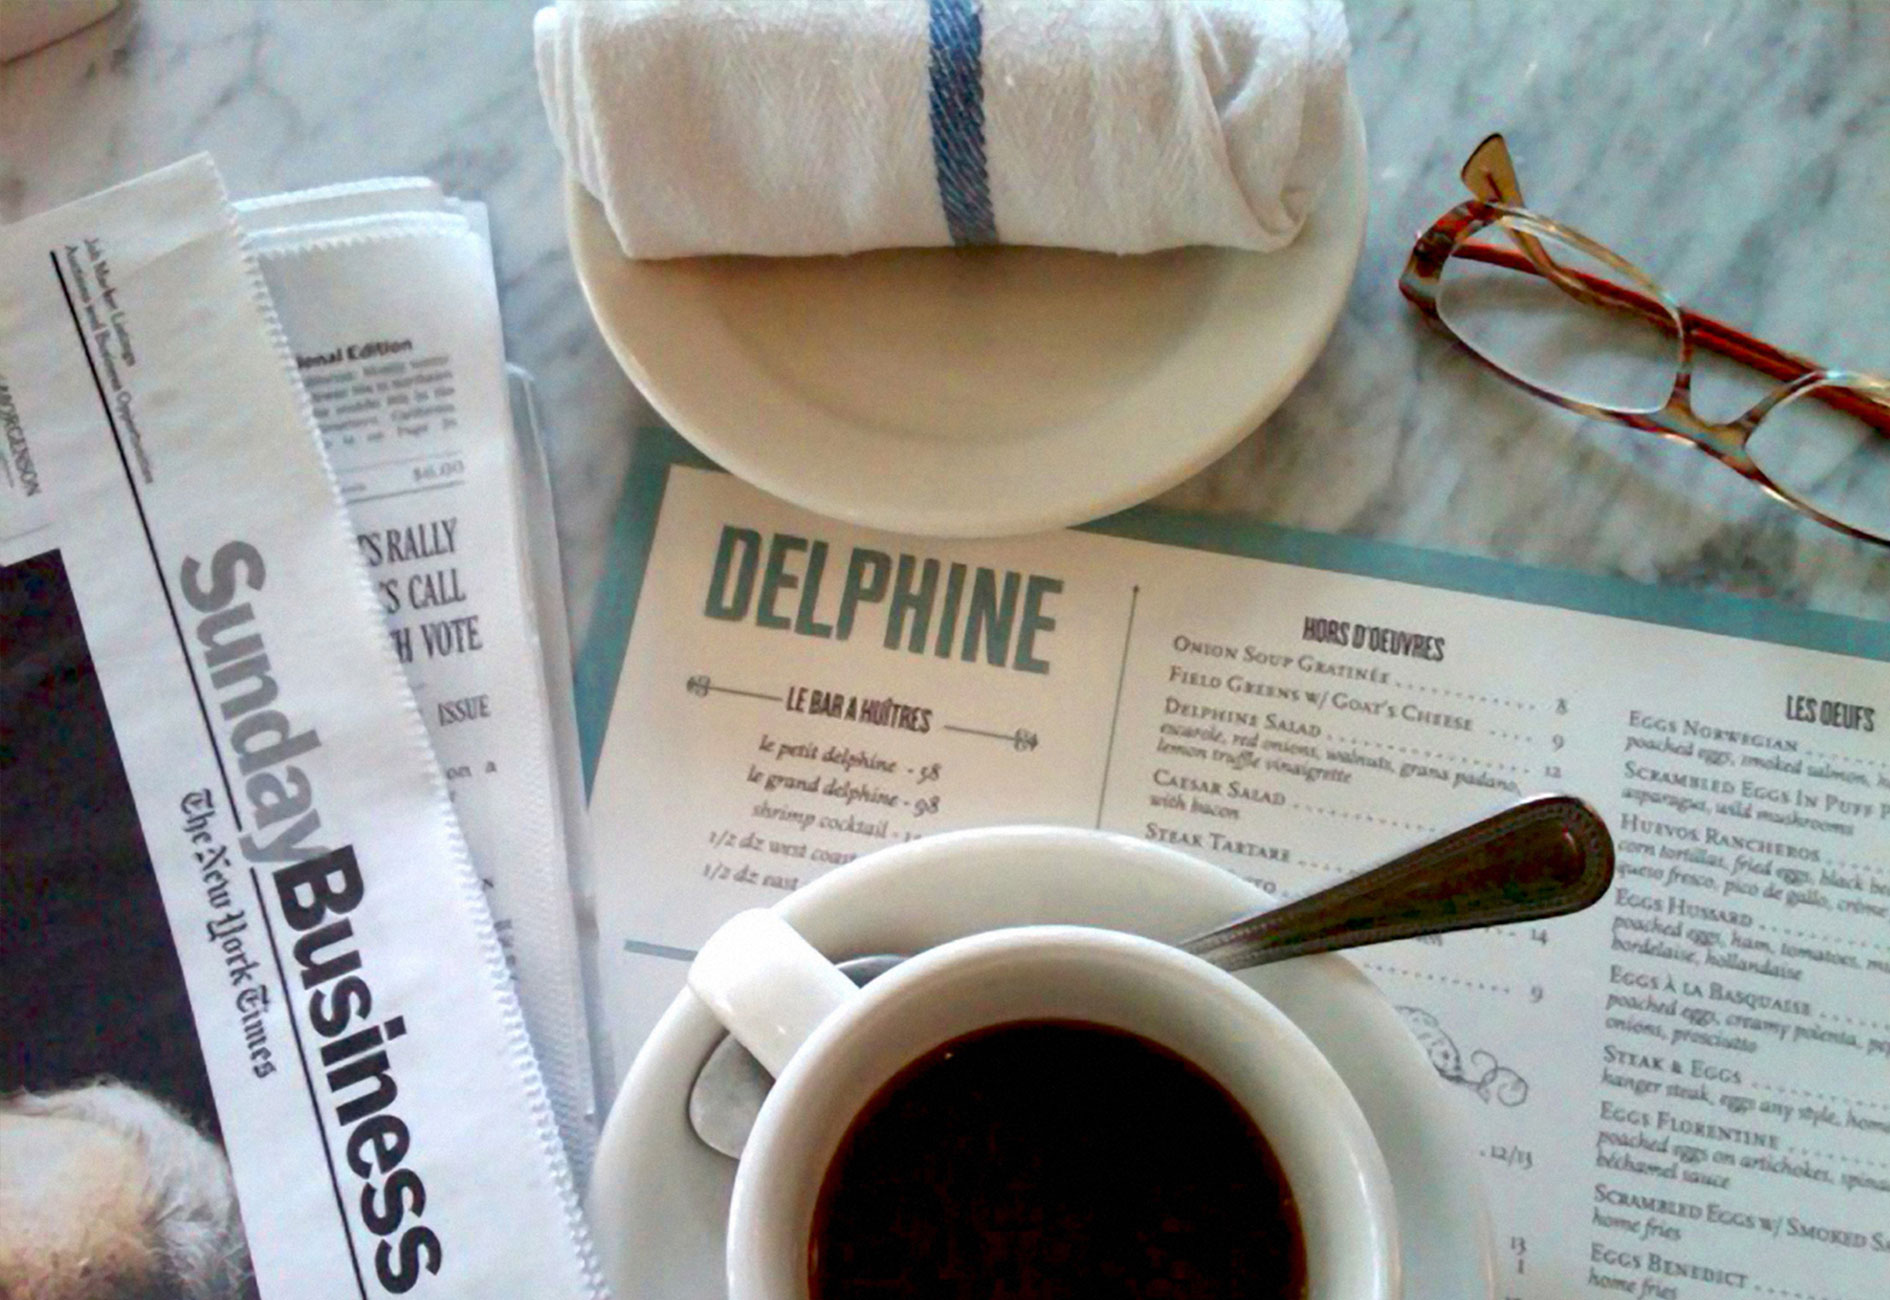 DELPHINE EATERY & BAR BRANDING by Mark Zeff Design